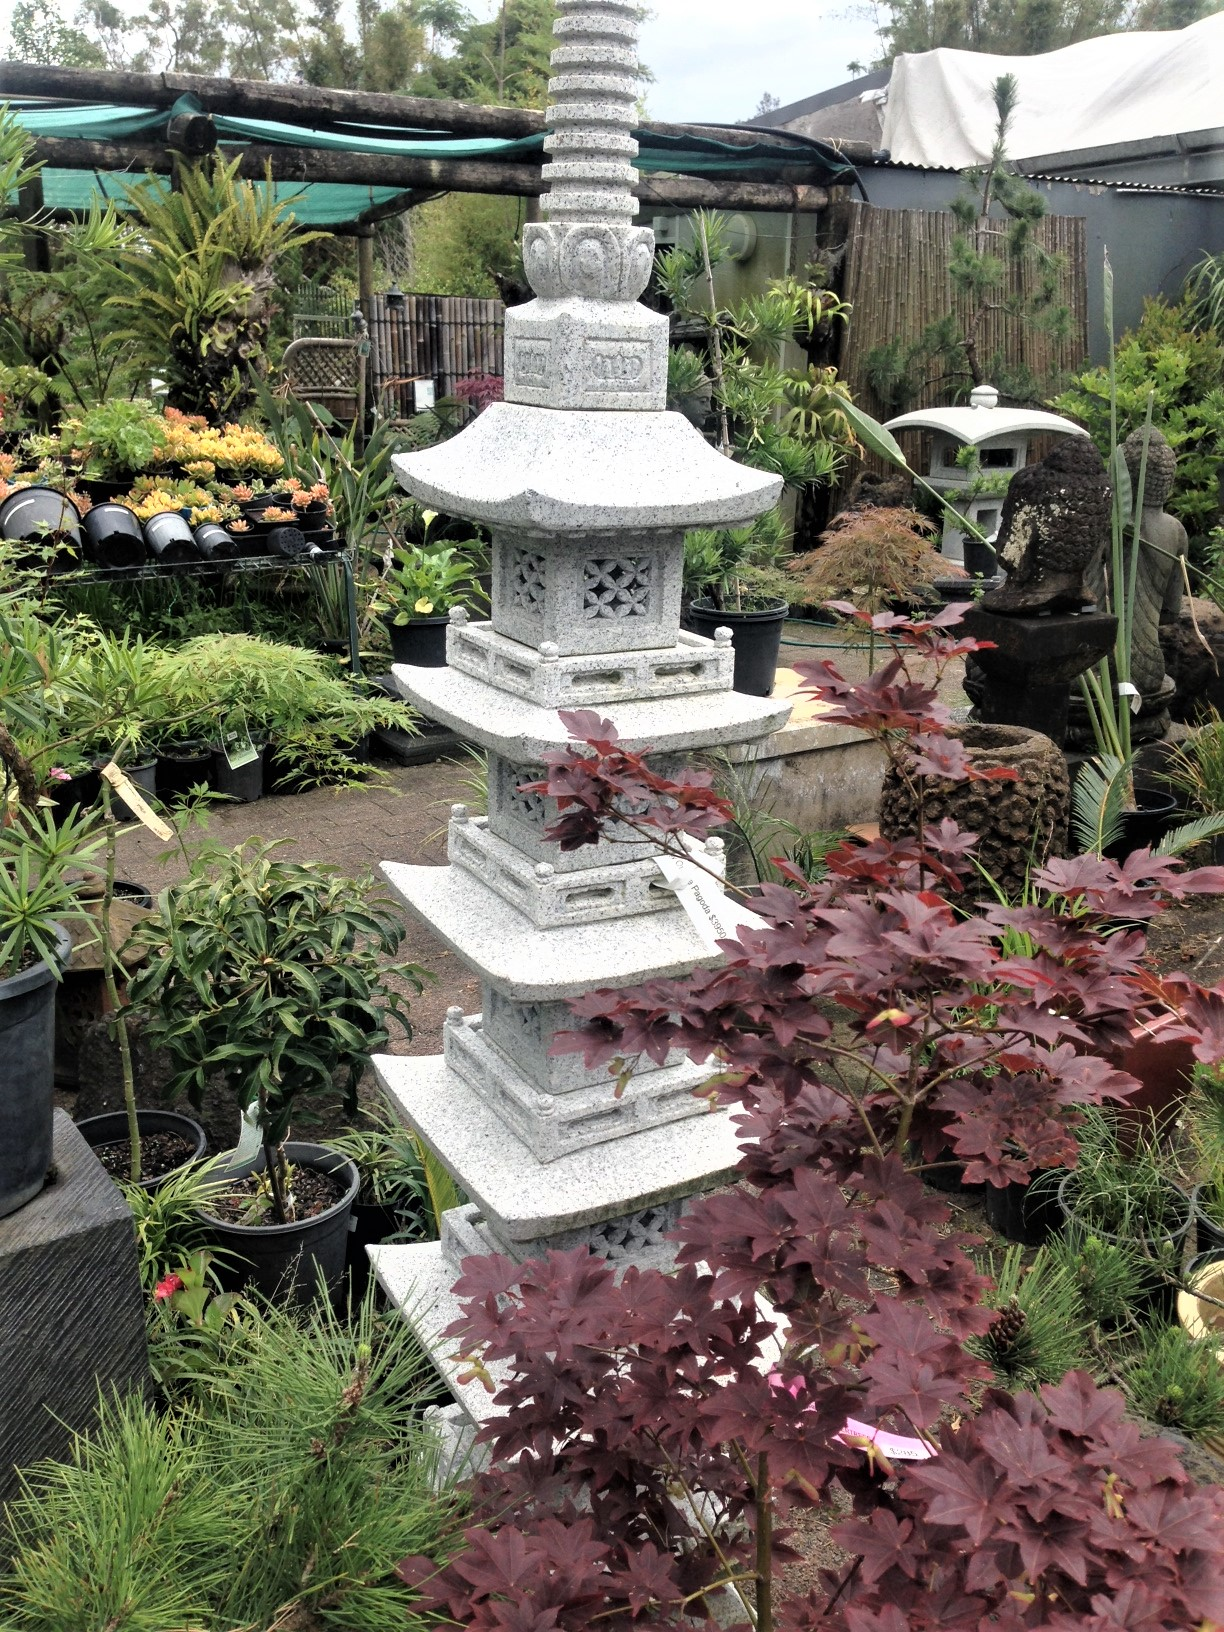 5 Storey Ornamental Pagoda <br>h183cm $3950 <br> OUT OF STOCK, CAN BE ORDERED